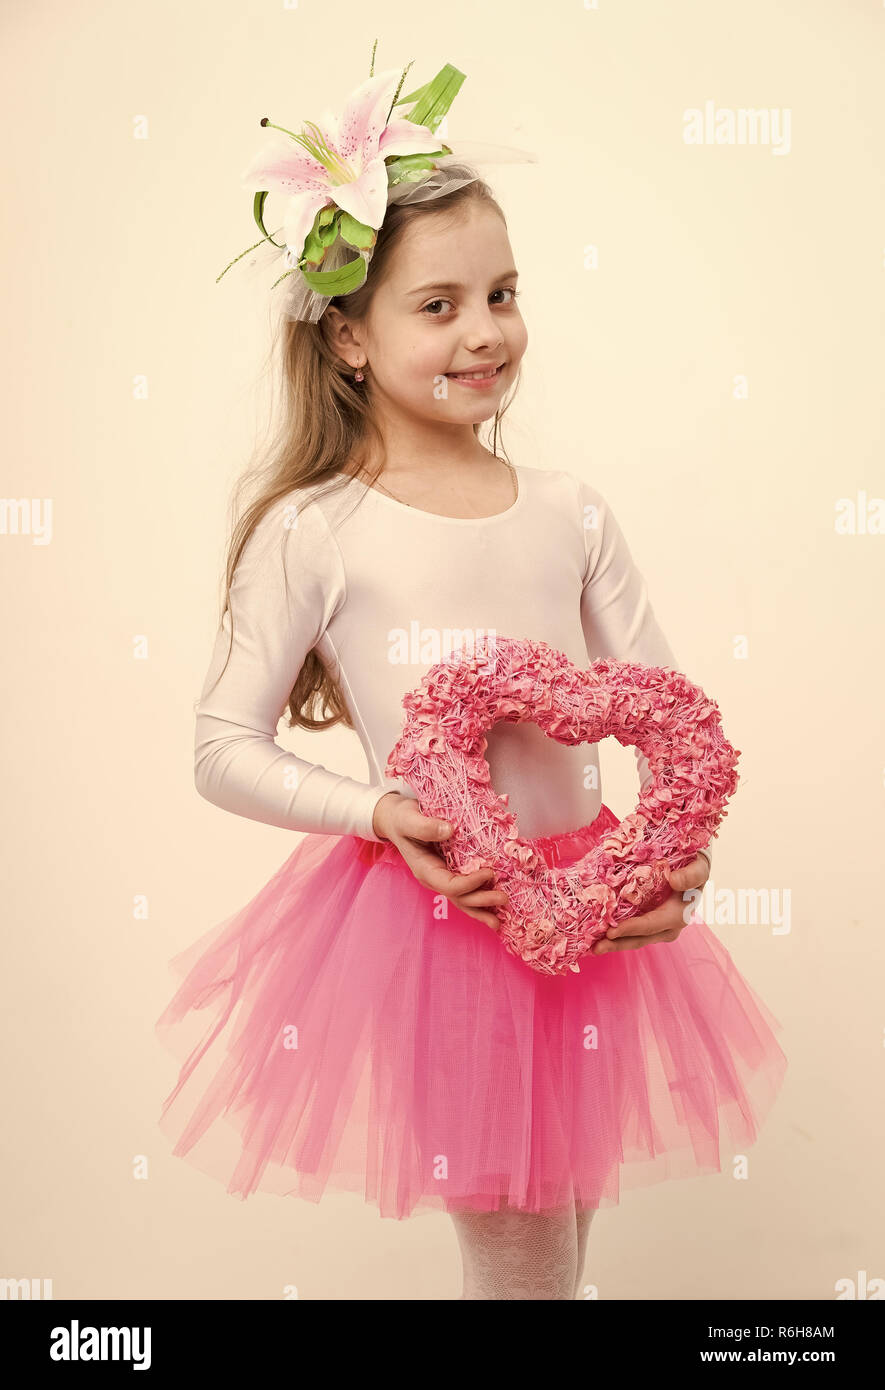 701fd5db7c small baby girl dancer, cute child ballerina with happy face and lily  flower in blonde